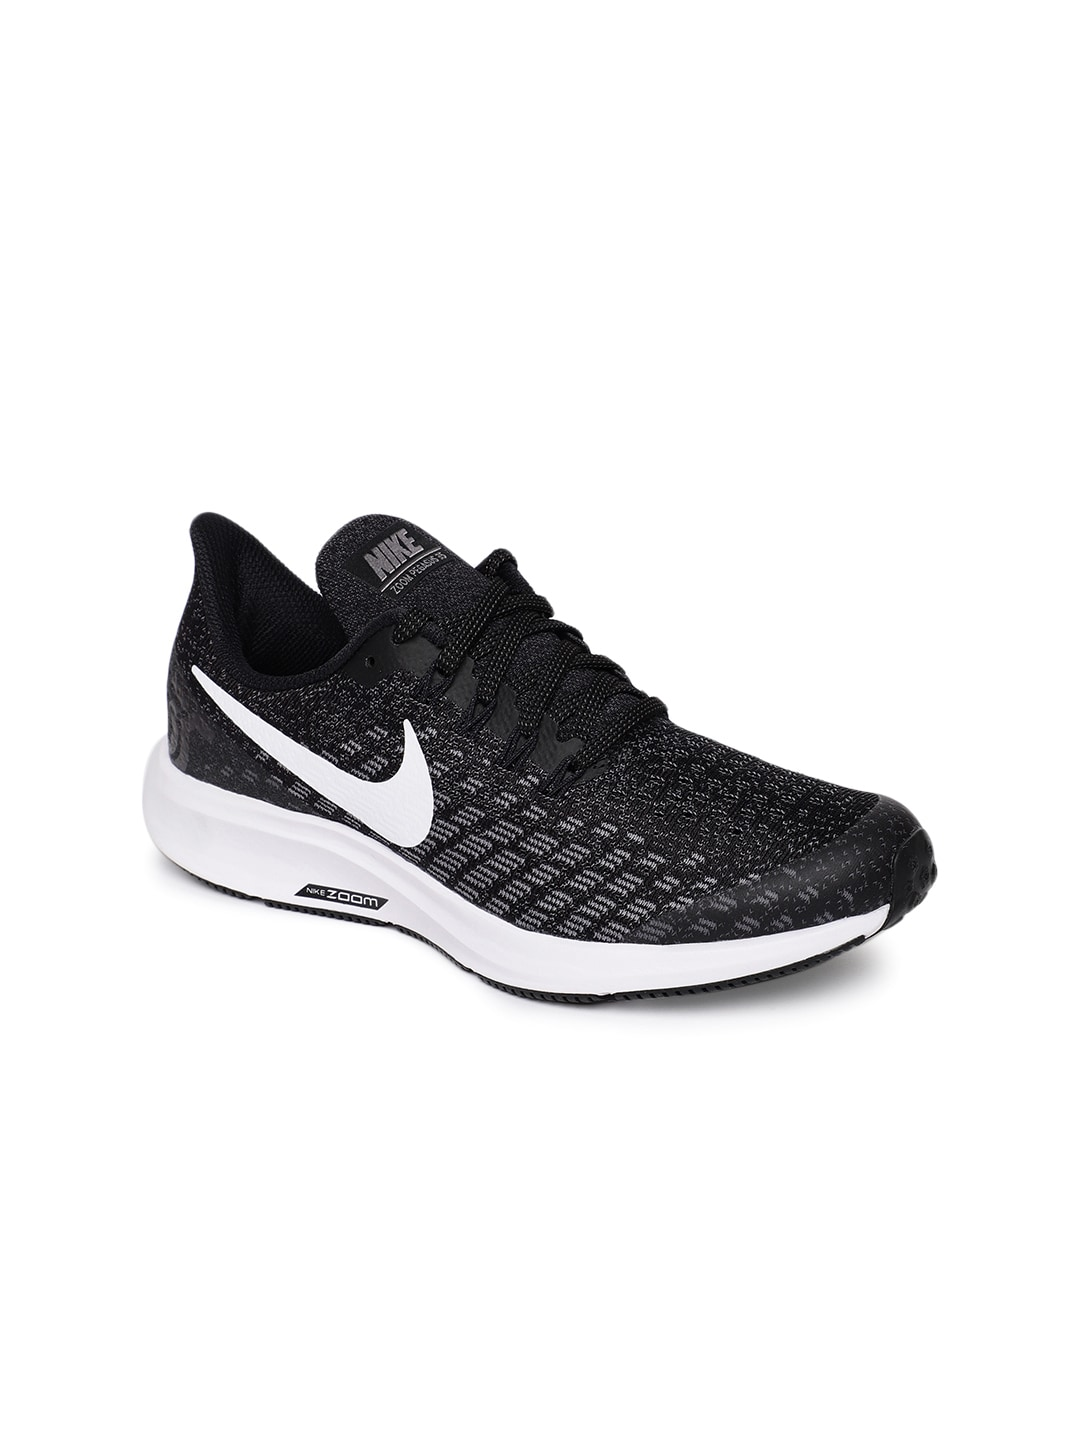 2f453dc8181b Nike Zoom Sports Shoes - Buy Nike Zoom Sports Shoes online in India